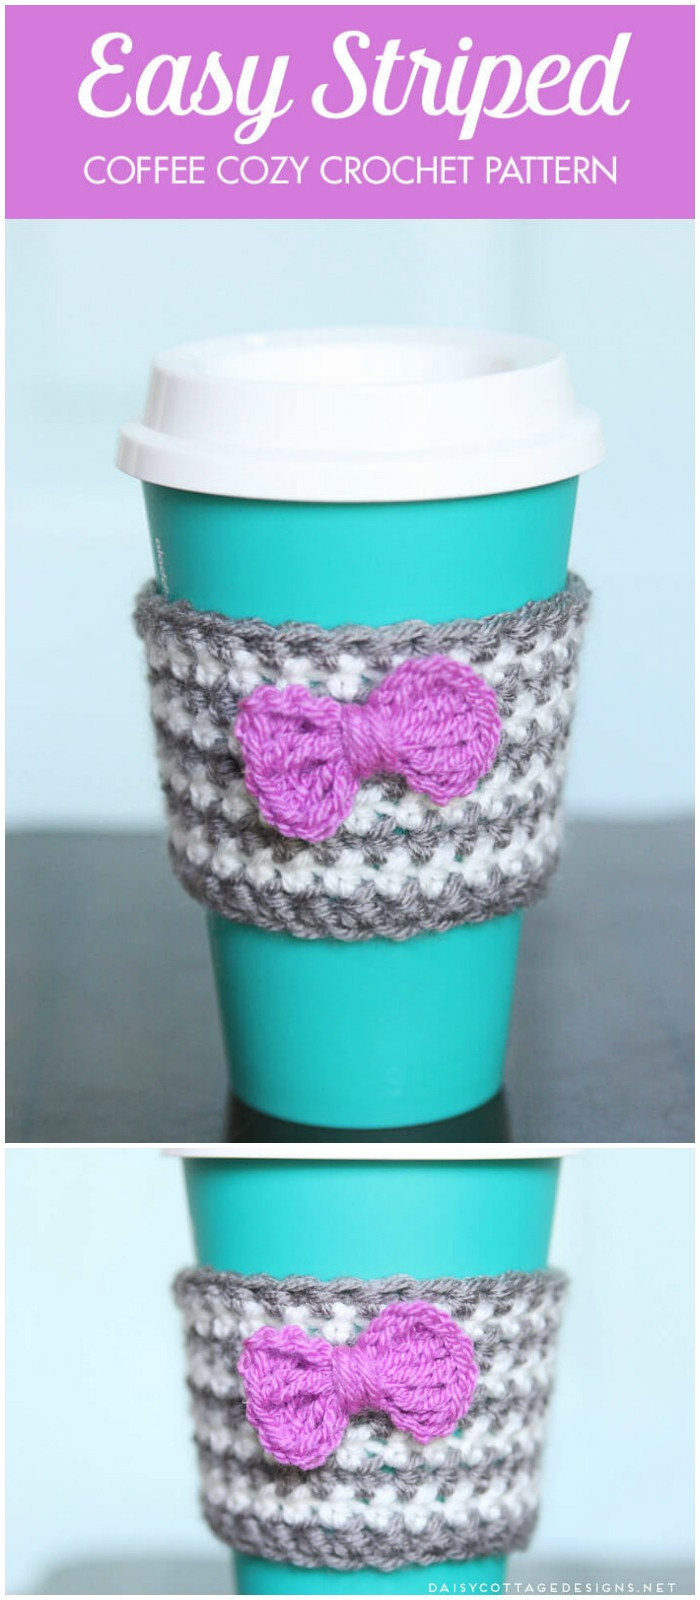 Crochet Coffee Cup Cozy Fresh 8 Crochet Cozy Patterns Free Crochet Patterns • Diy Home Of Crochet Coffee Cup Cozy Fresh Creativity Awaits Crochet Coffee Cozy Patterns Stitch